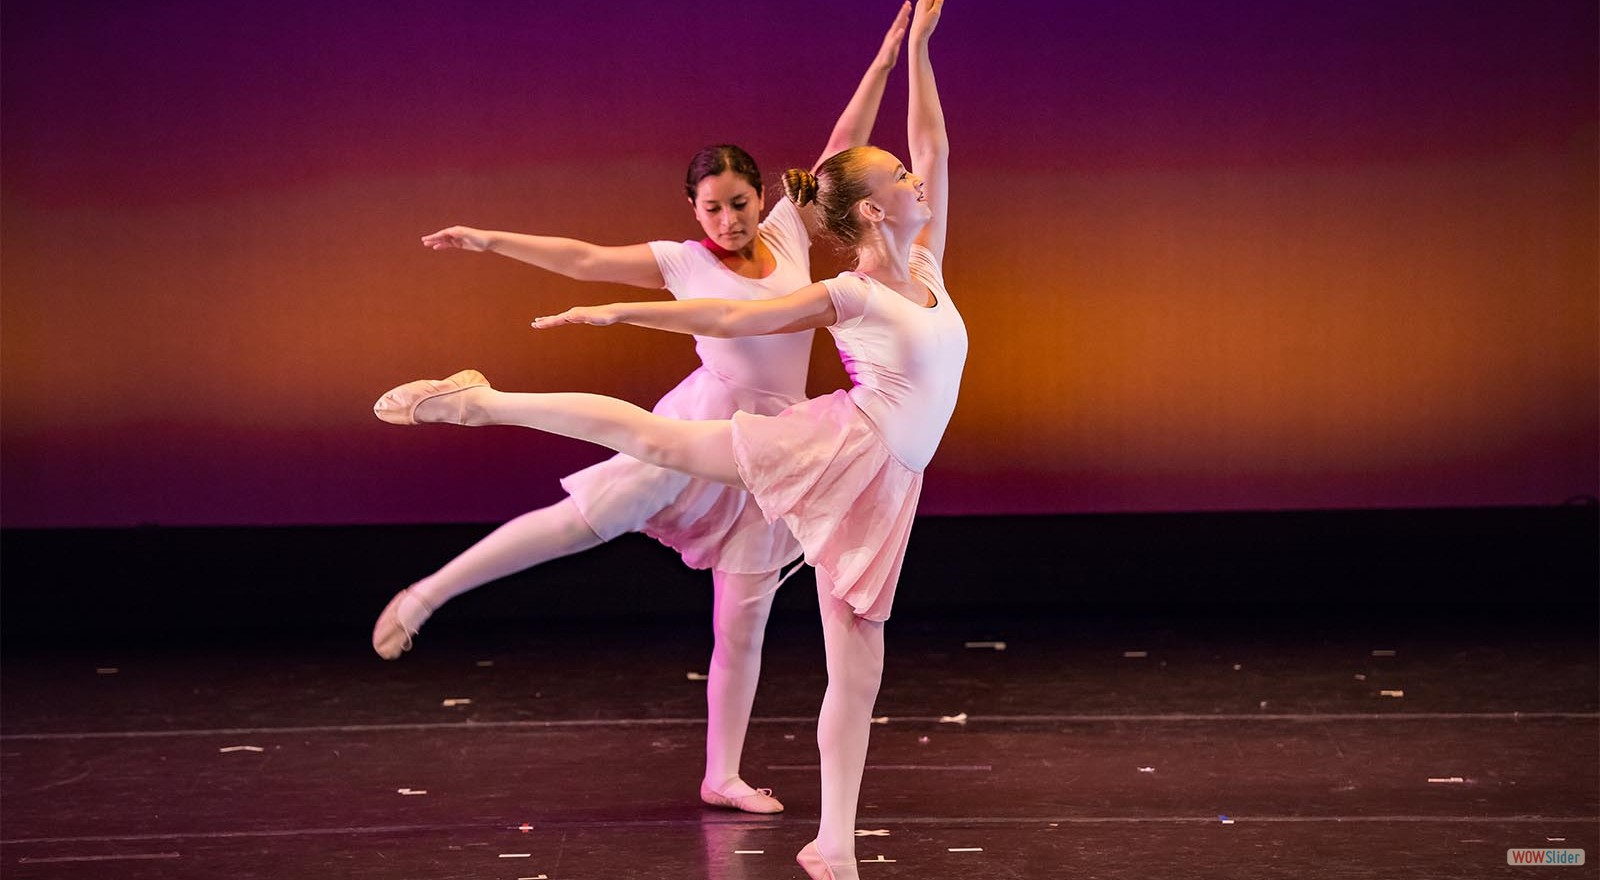 DANCE: ballet, modern, jazz and tap